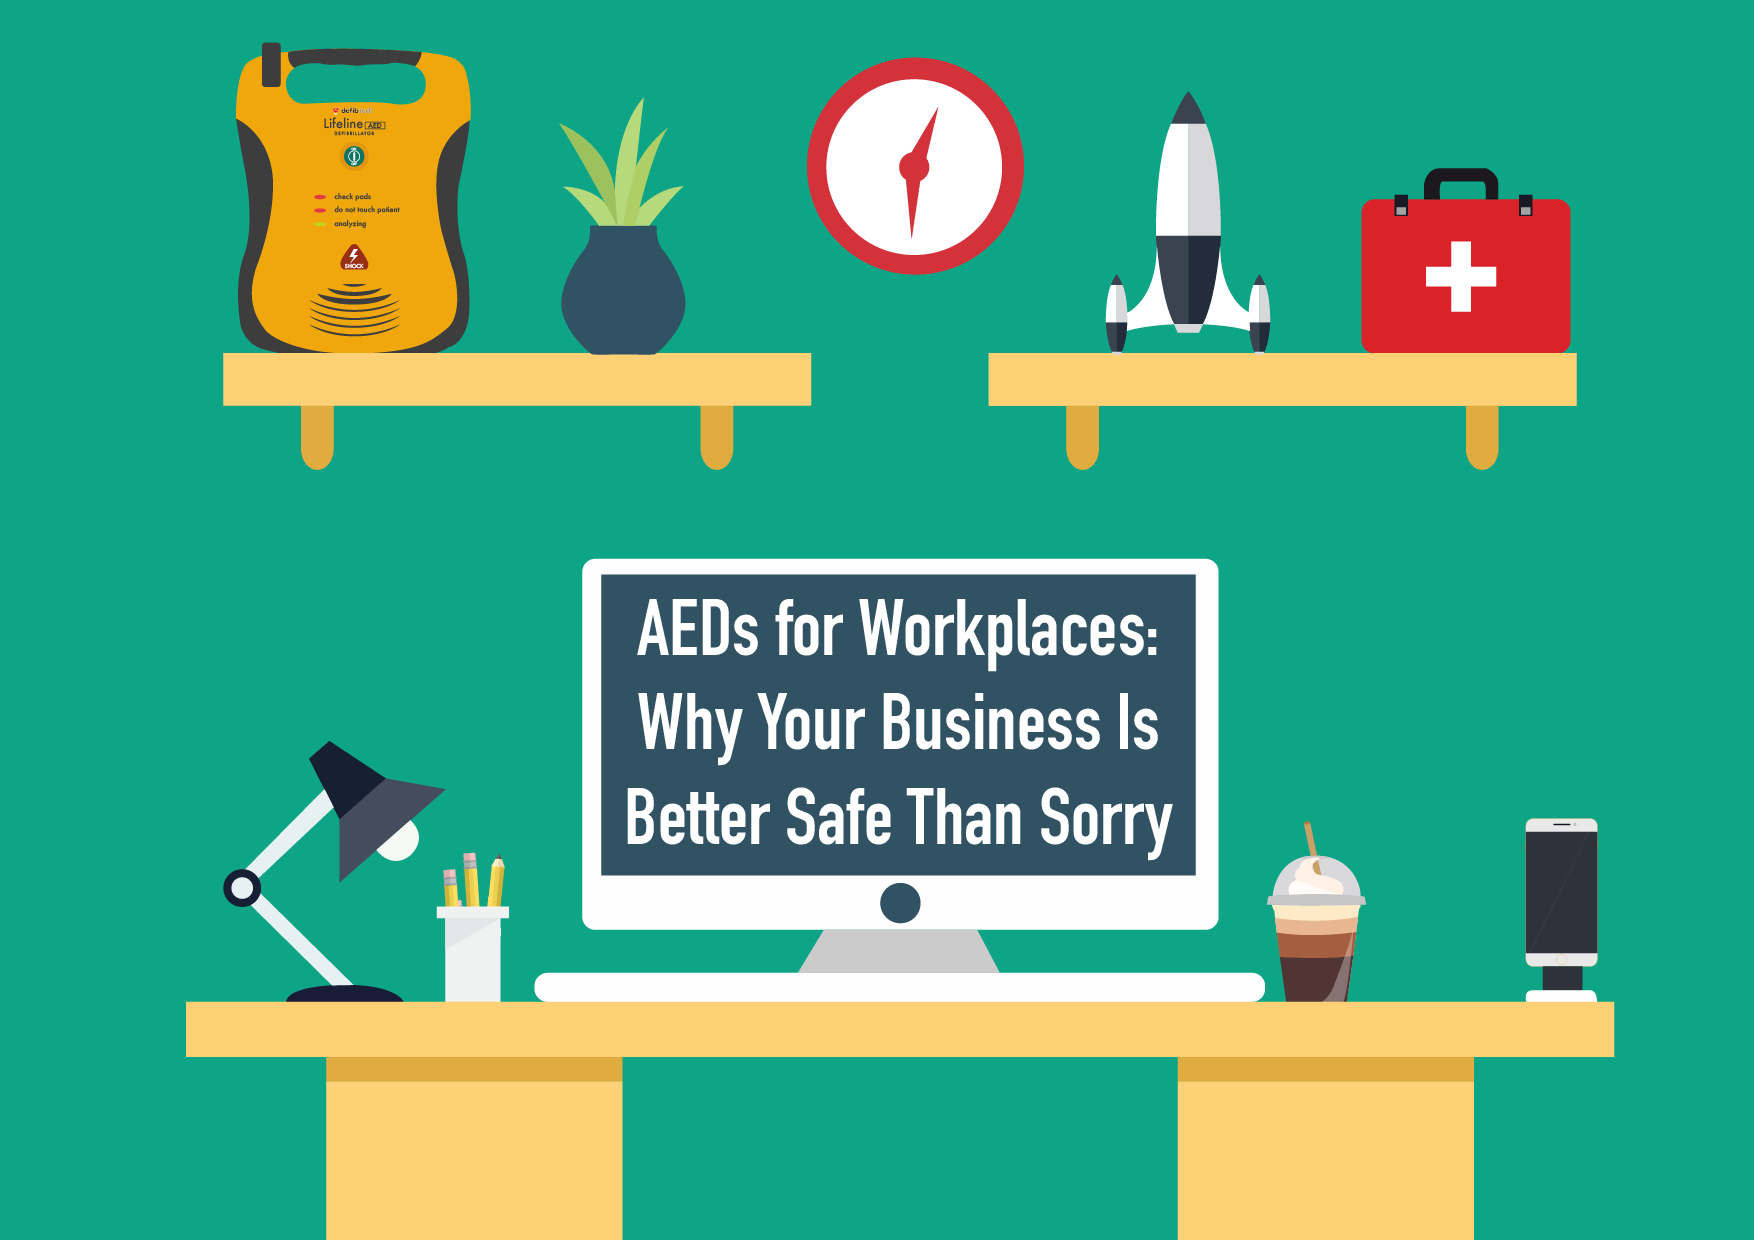 AEDs for Workplaces Why Your Business Is Better Safe Than